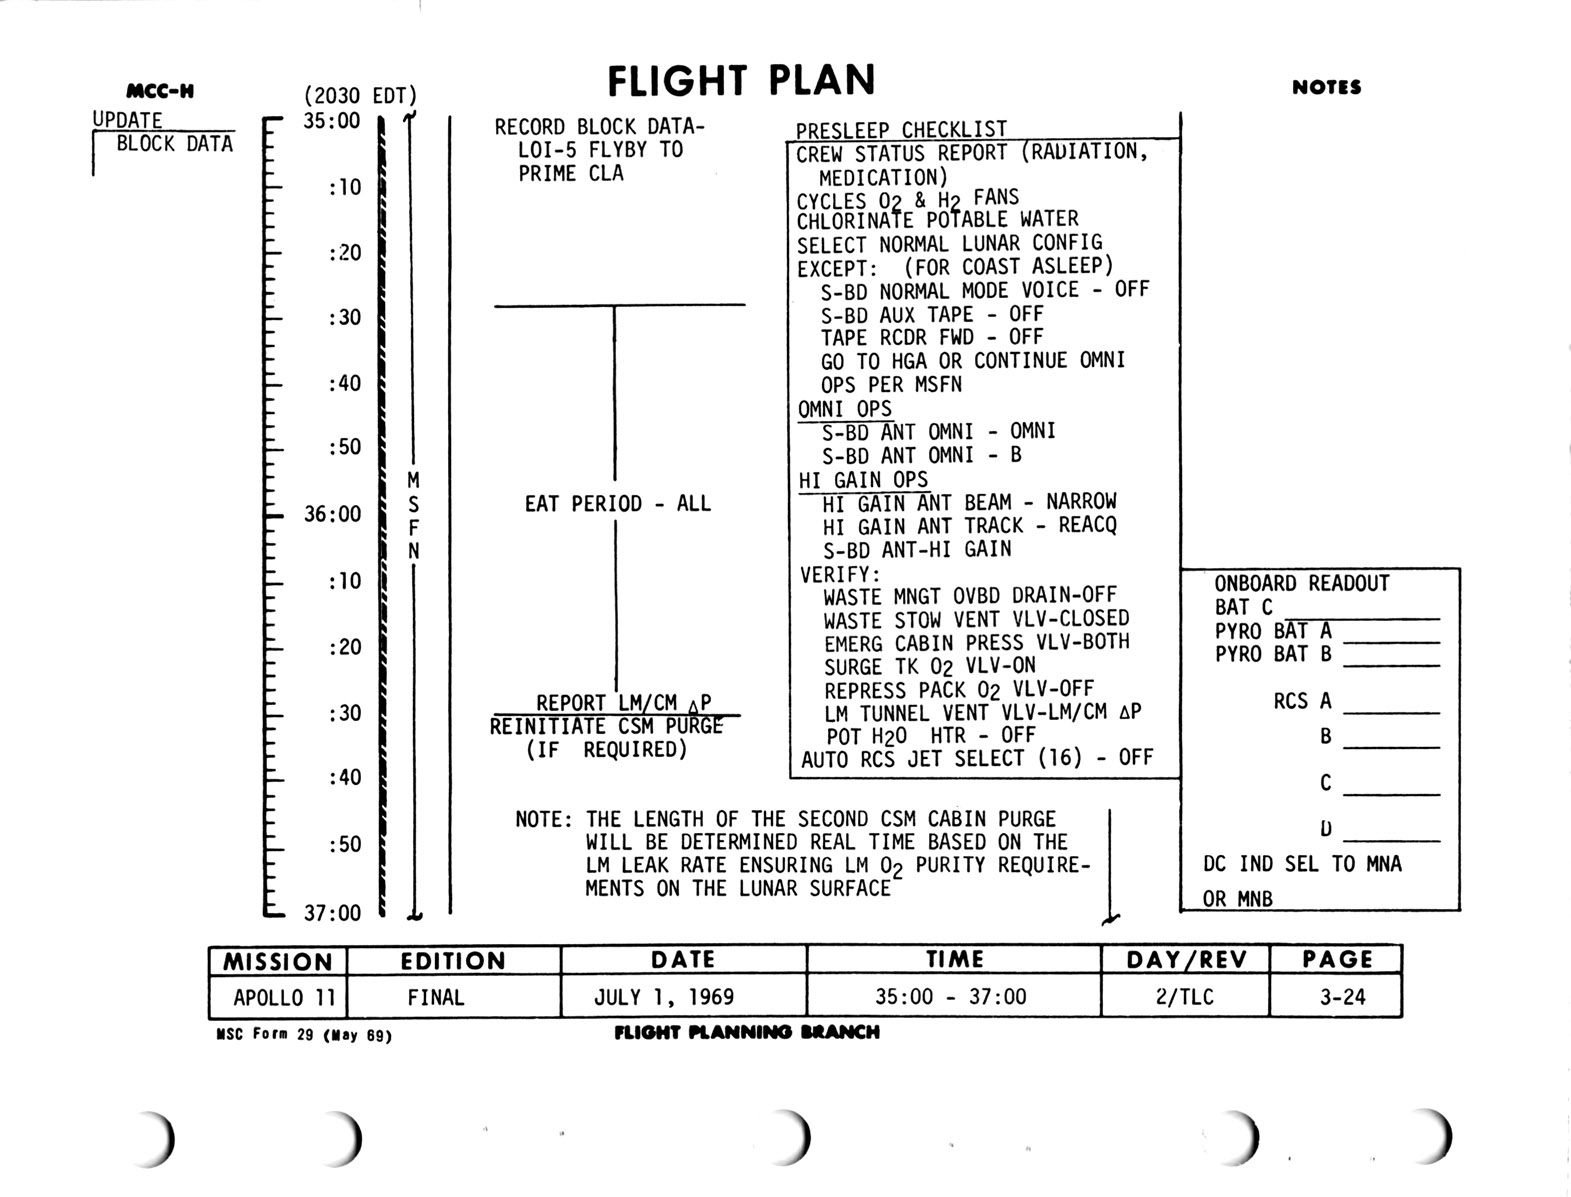 apollo flight journal - photo #4